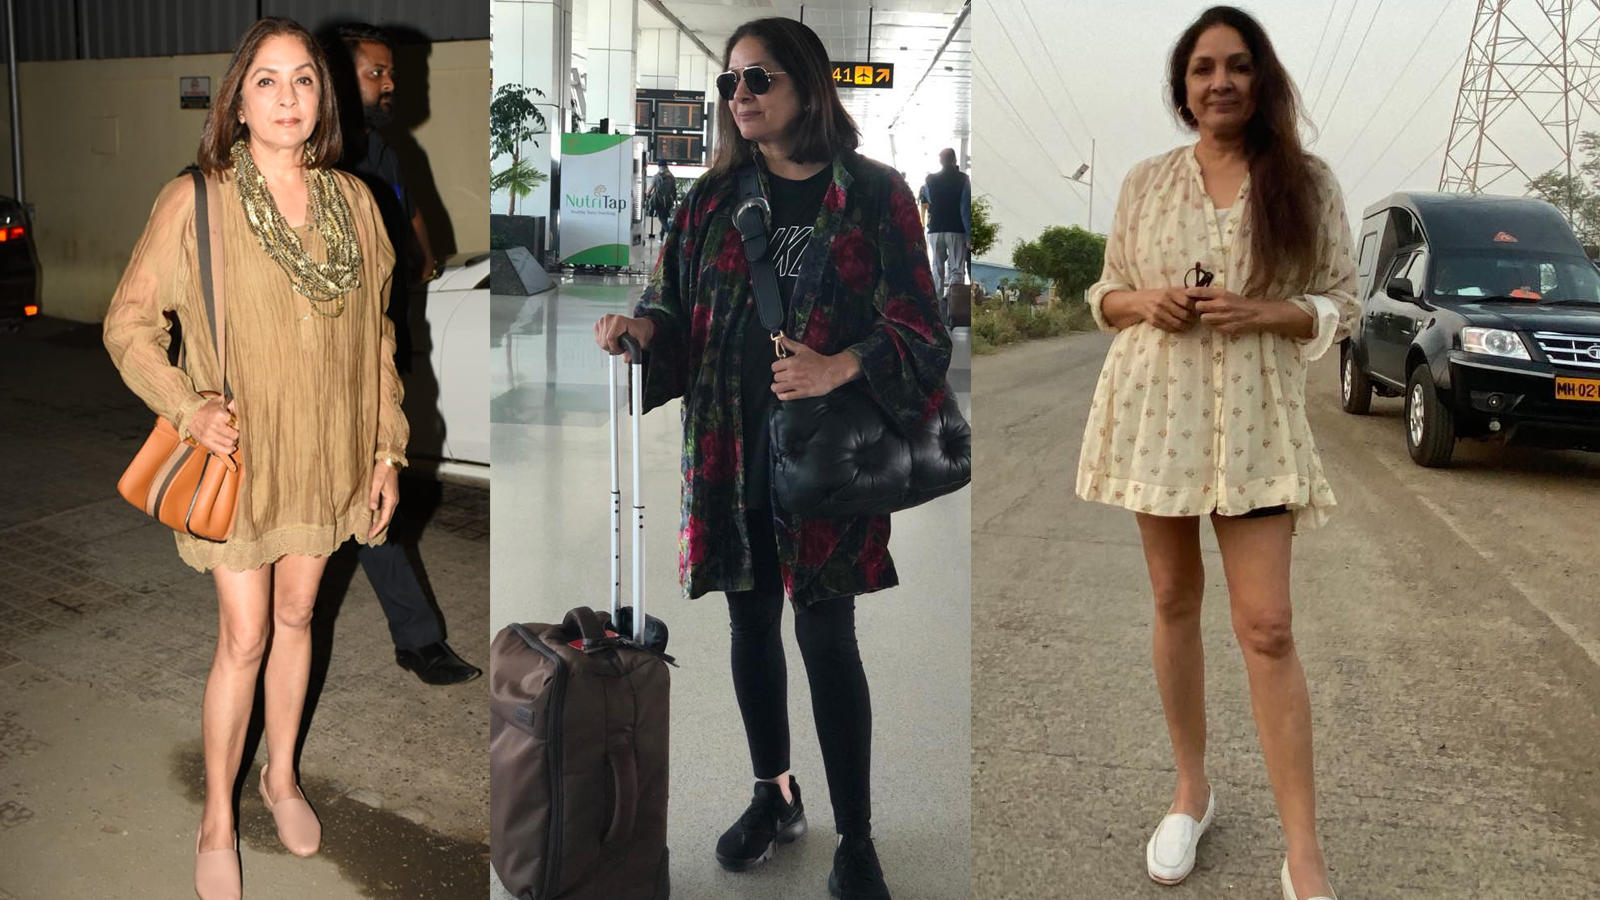 Neena Gupta ditches short dresses, says 'chalo no frock for sometime'